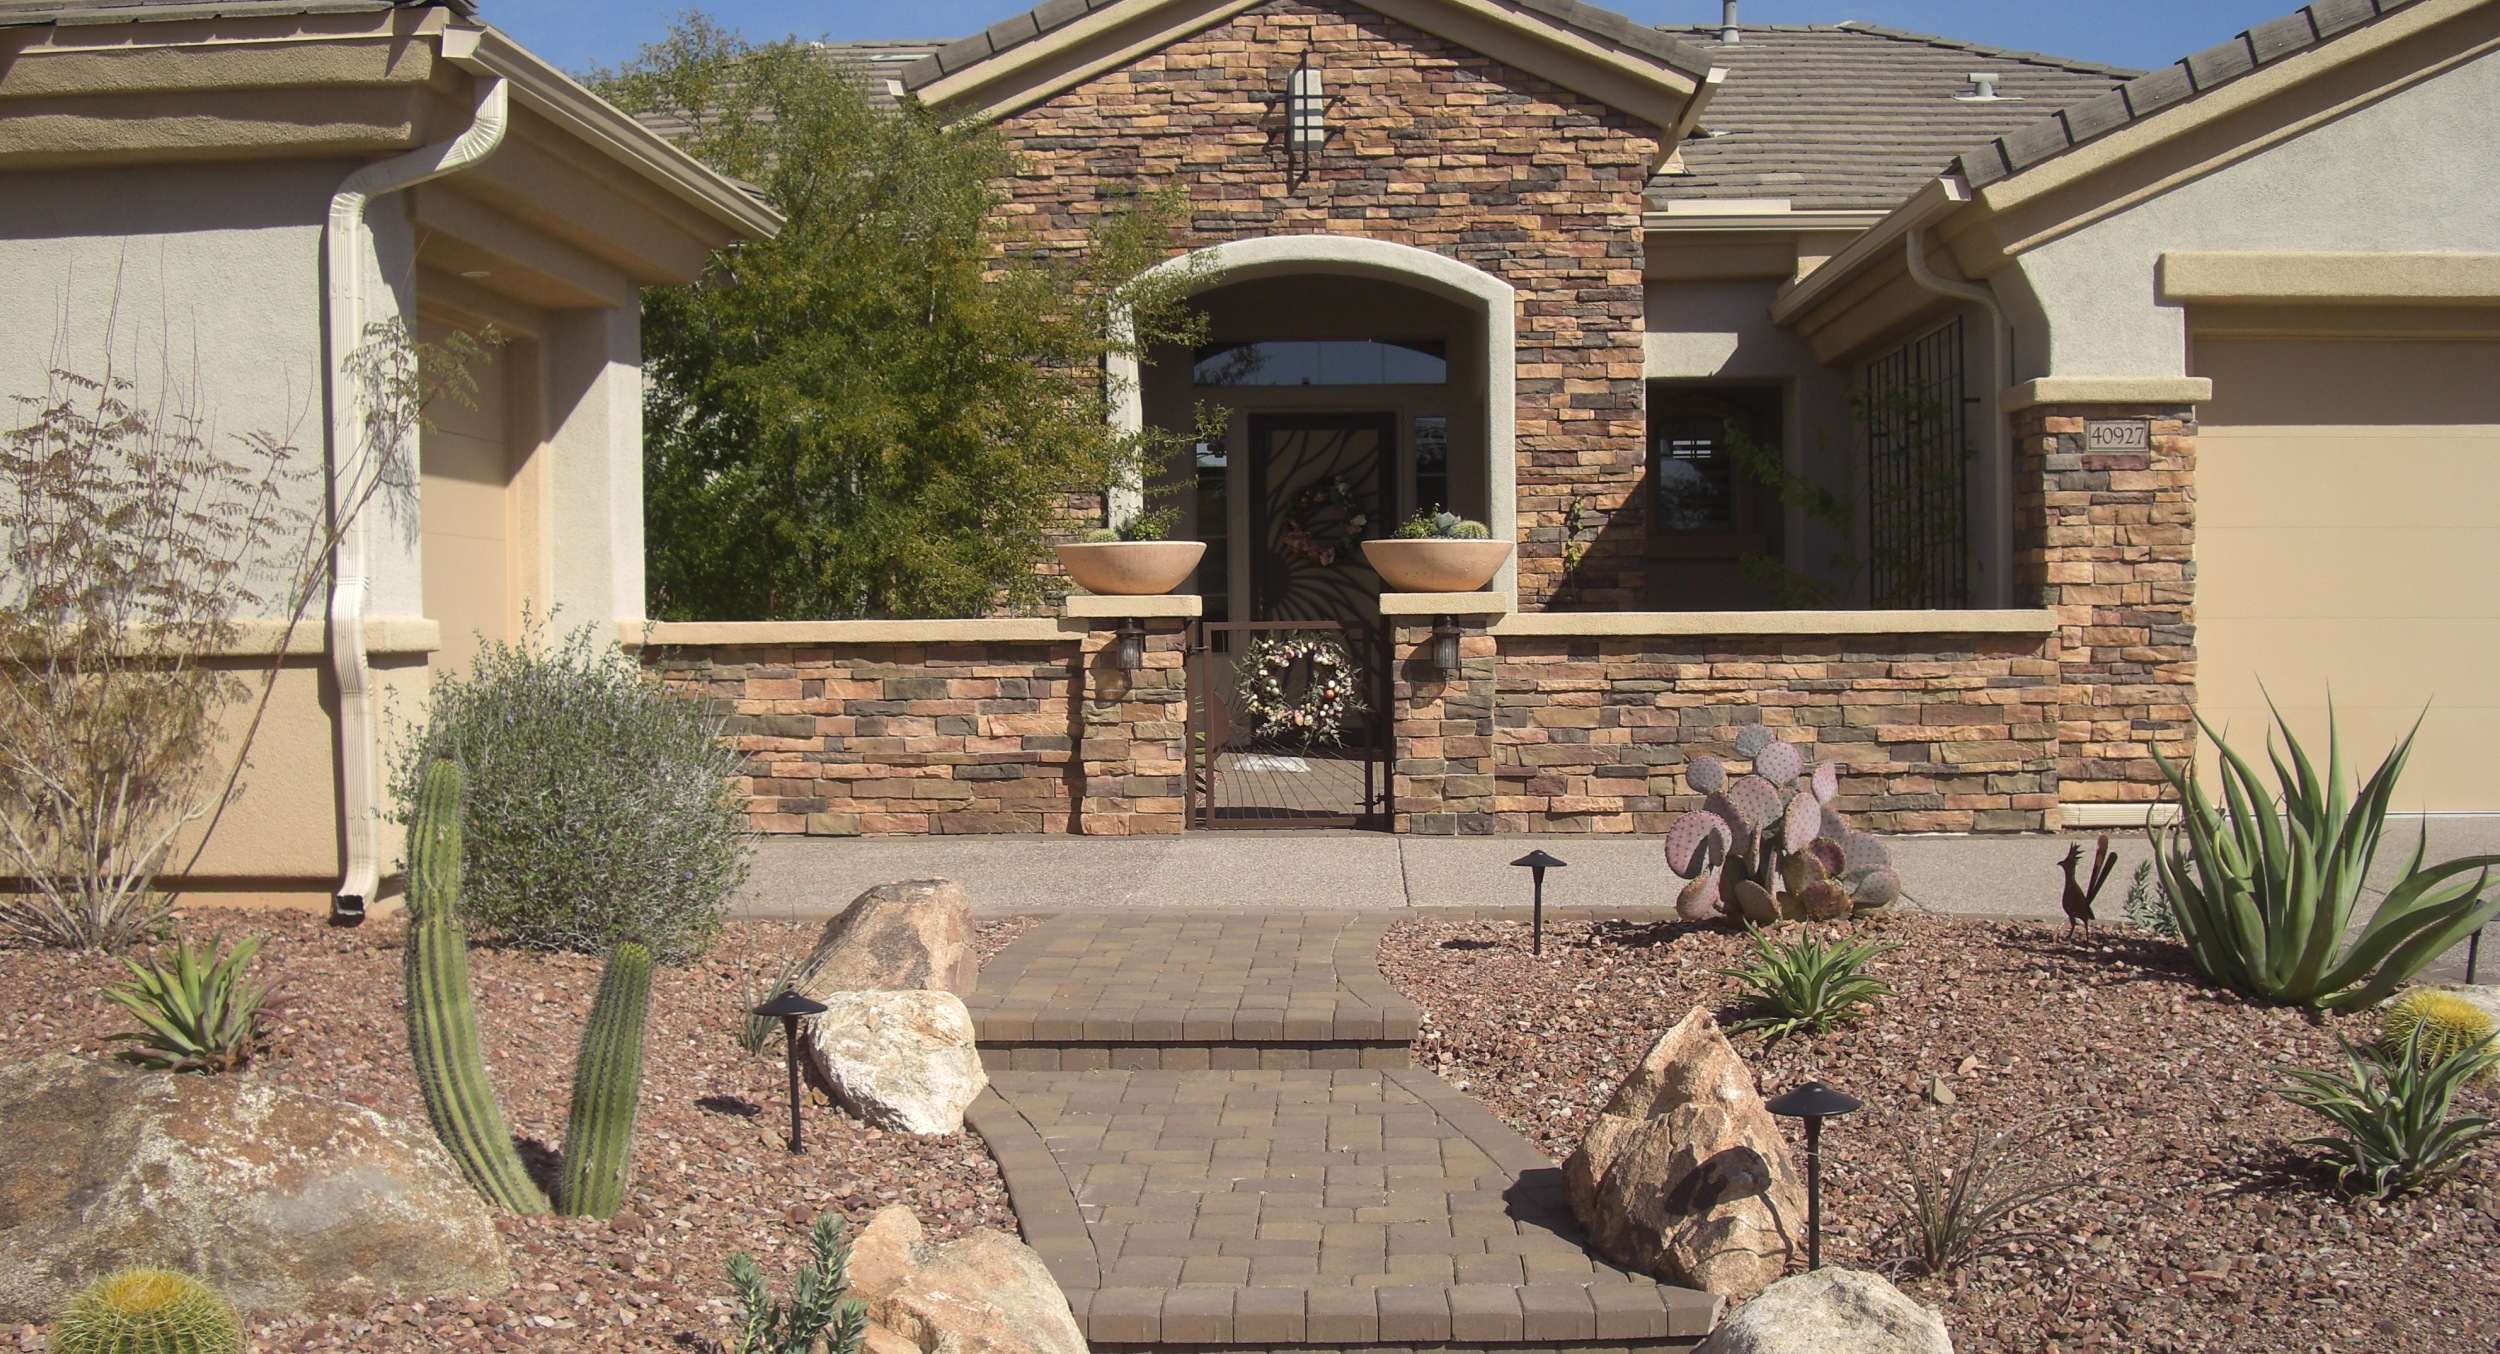 Welcome guests to your homw in style with handsome Phoenix courtyard designs like this one with walls of the same stone on the house entryway.